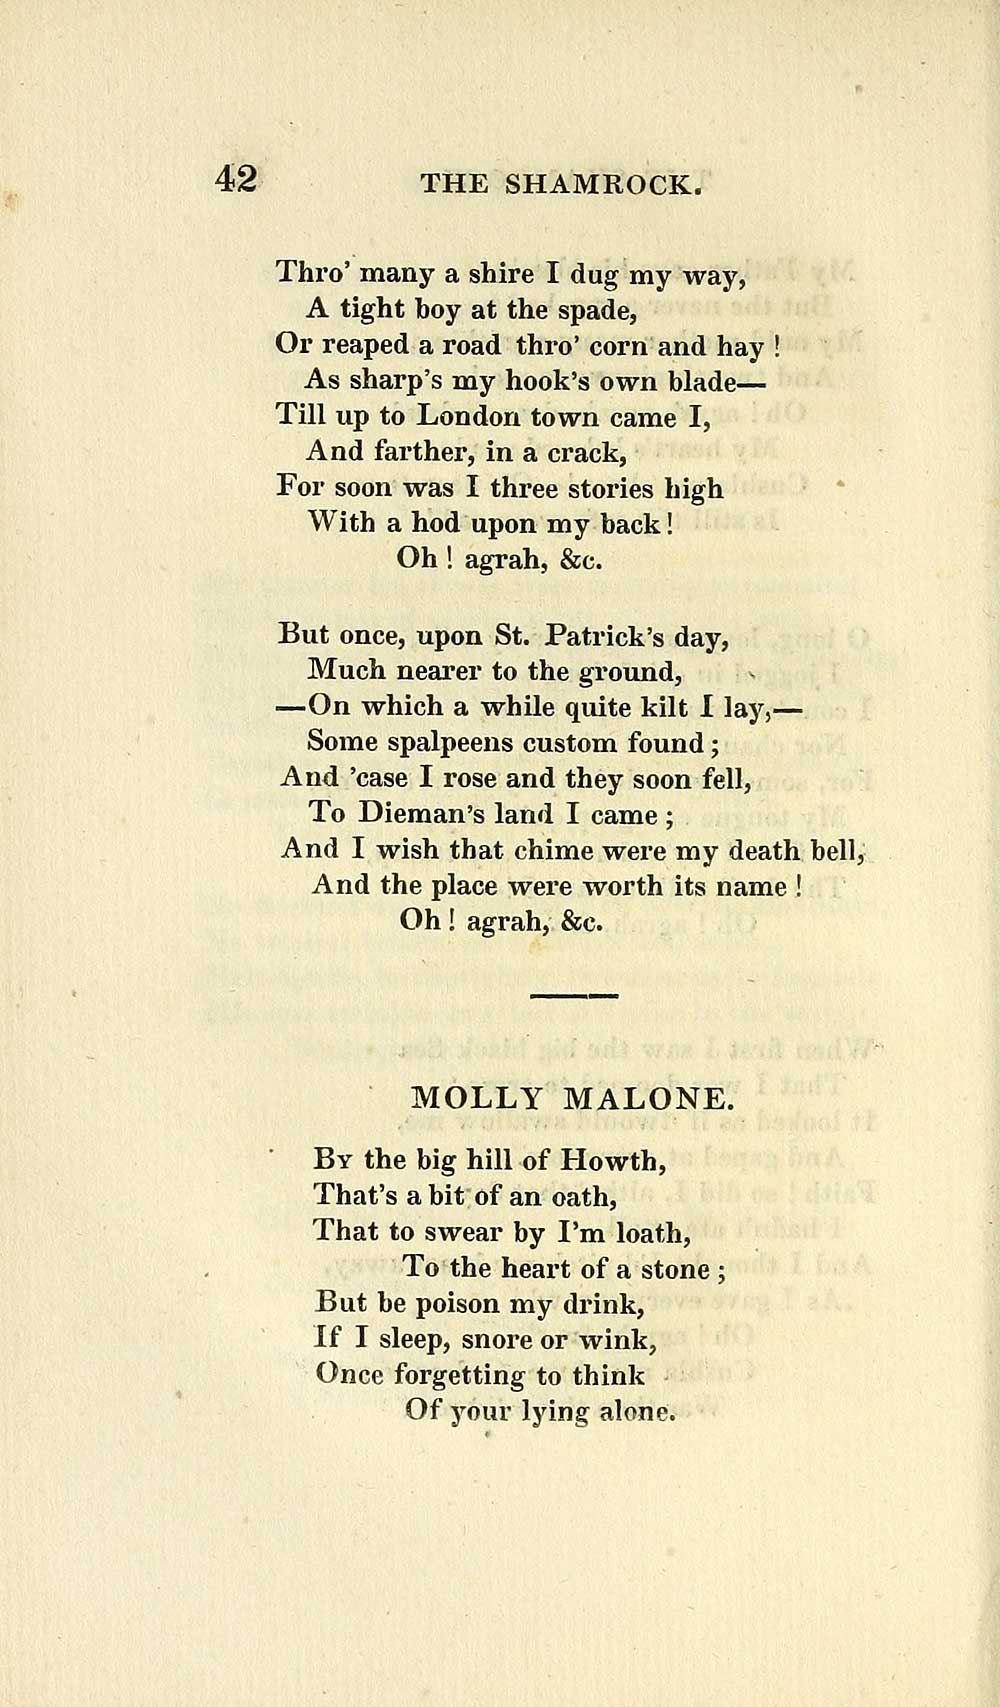 76 Page 42 Molly Malone Glen Collection Of Printed Music